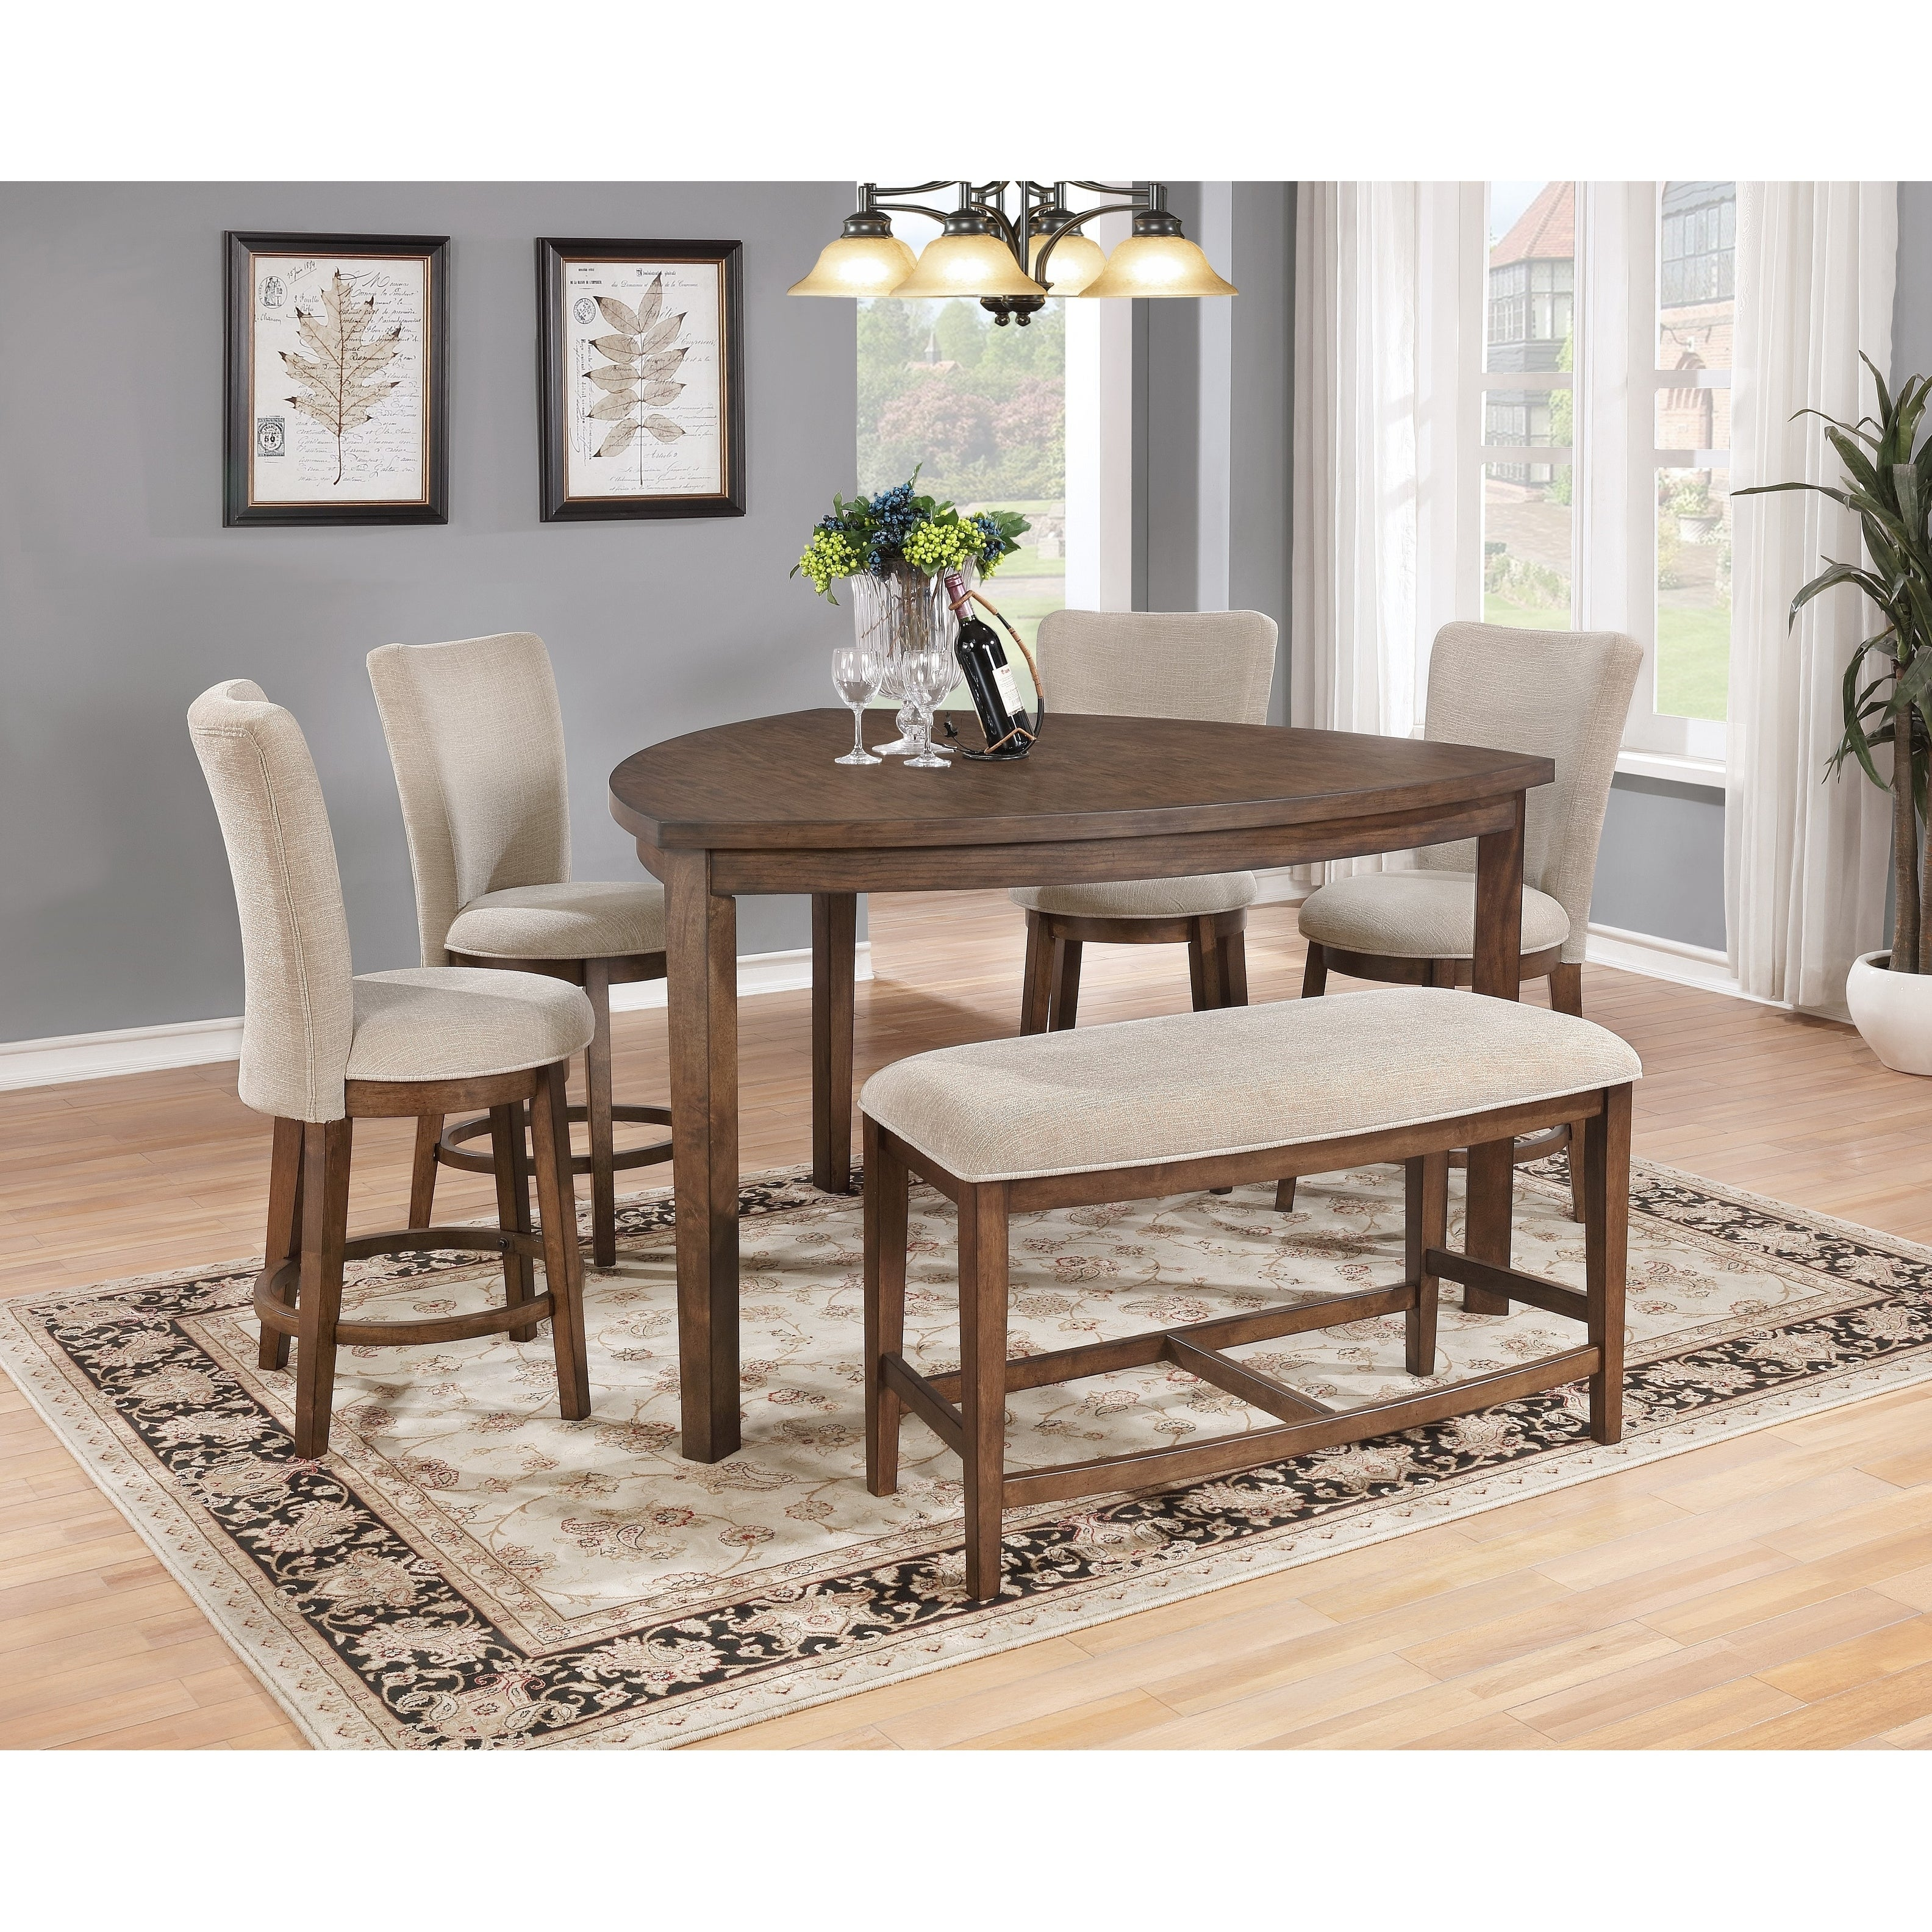 Picture of: Best Quality Furniture 6 Piece Pecan Counter Height Dining Table Set With Bench Overstock 17965280